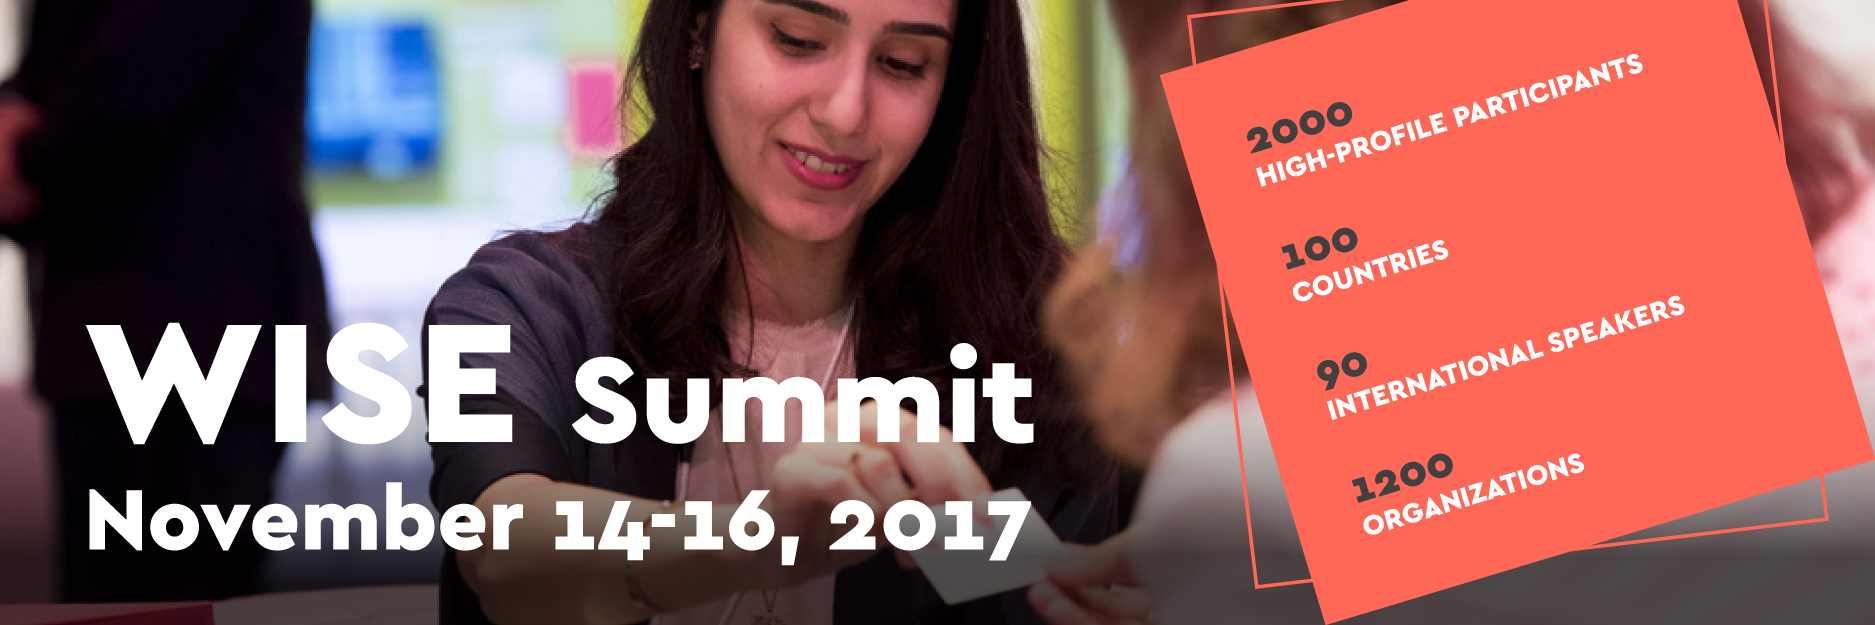 The 2017 WISE Summit will convene November 14-16 2017, in Doha, Qatar.